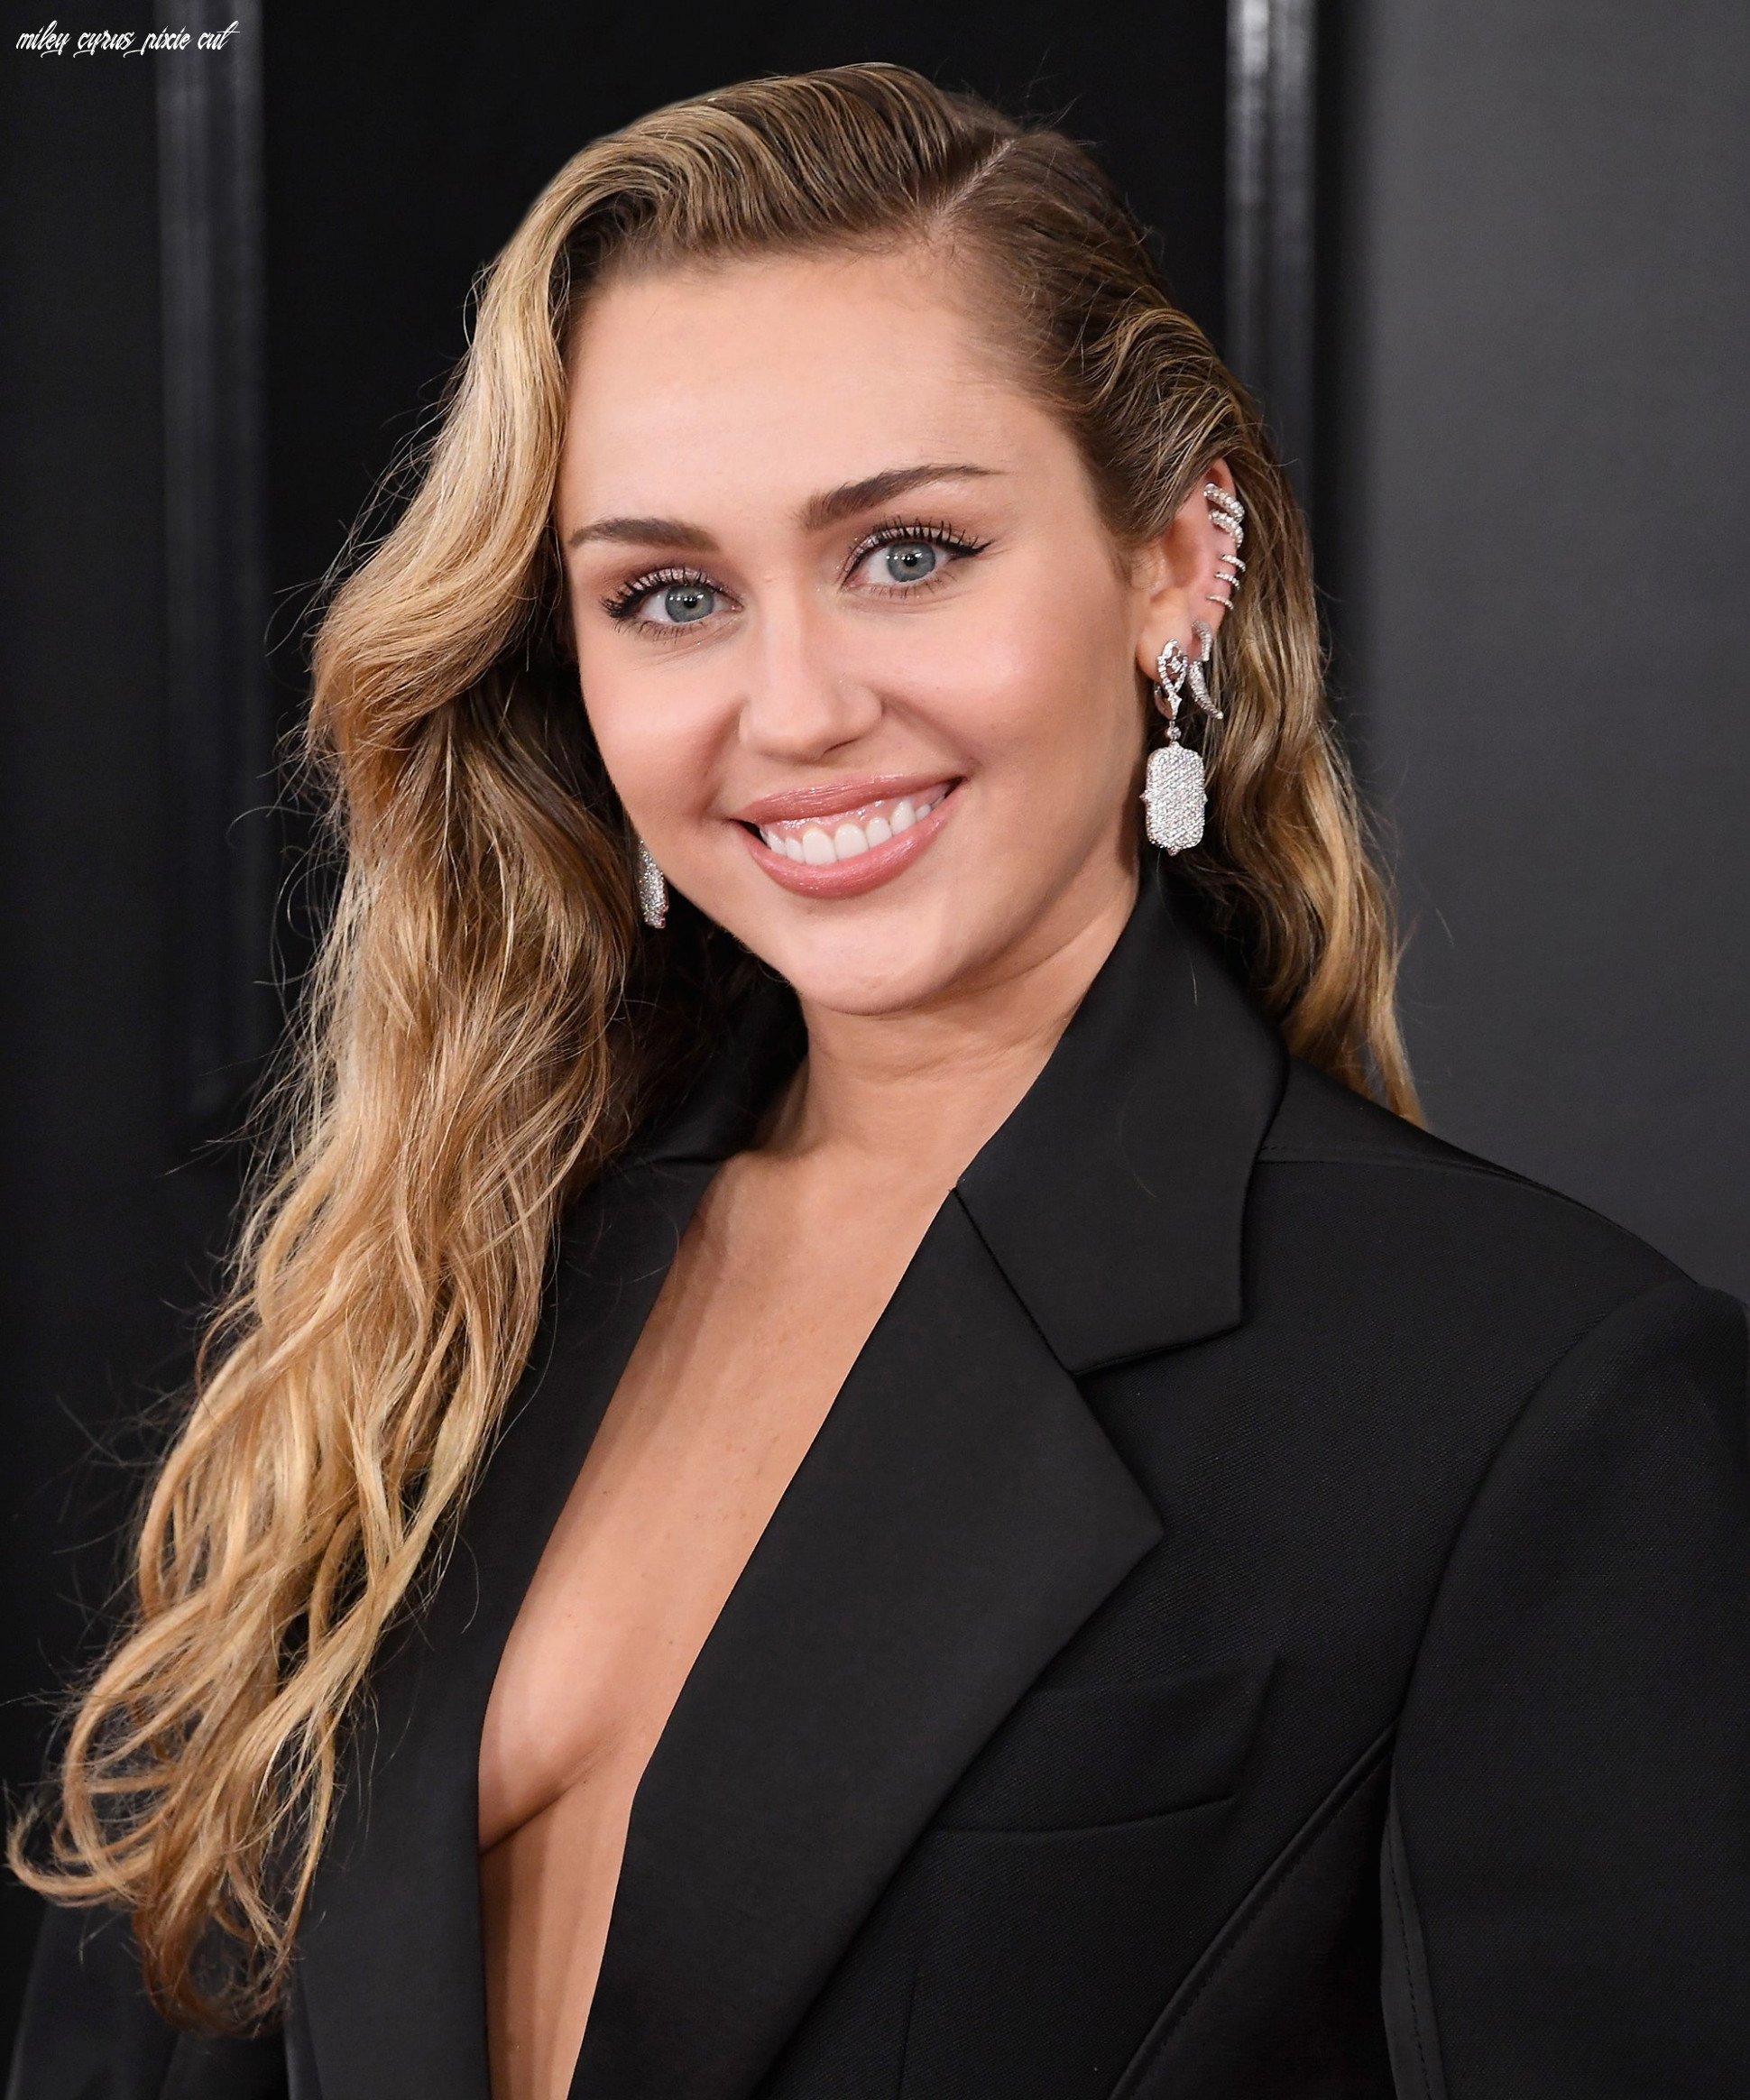 Miley cyrus got a pixie mullet haircut from mom tish miley cyrus pixie cut